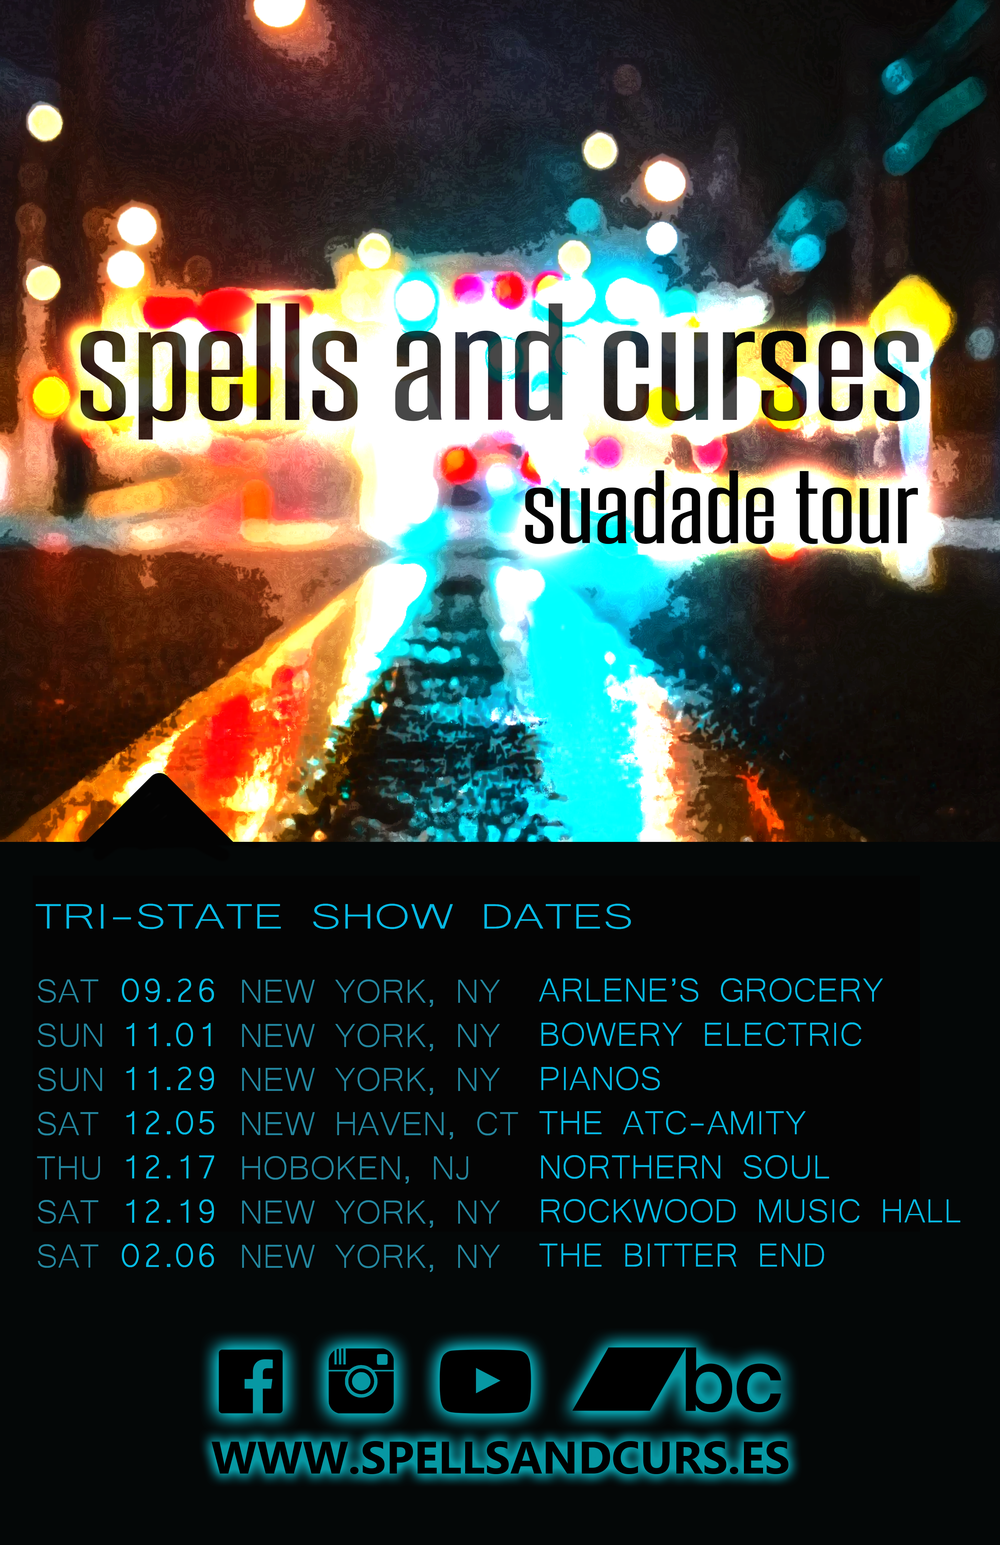 SPELLSANDCURSES-SUADADE-TOUR_UPDATED-12.09.15.png